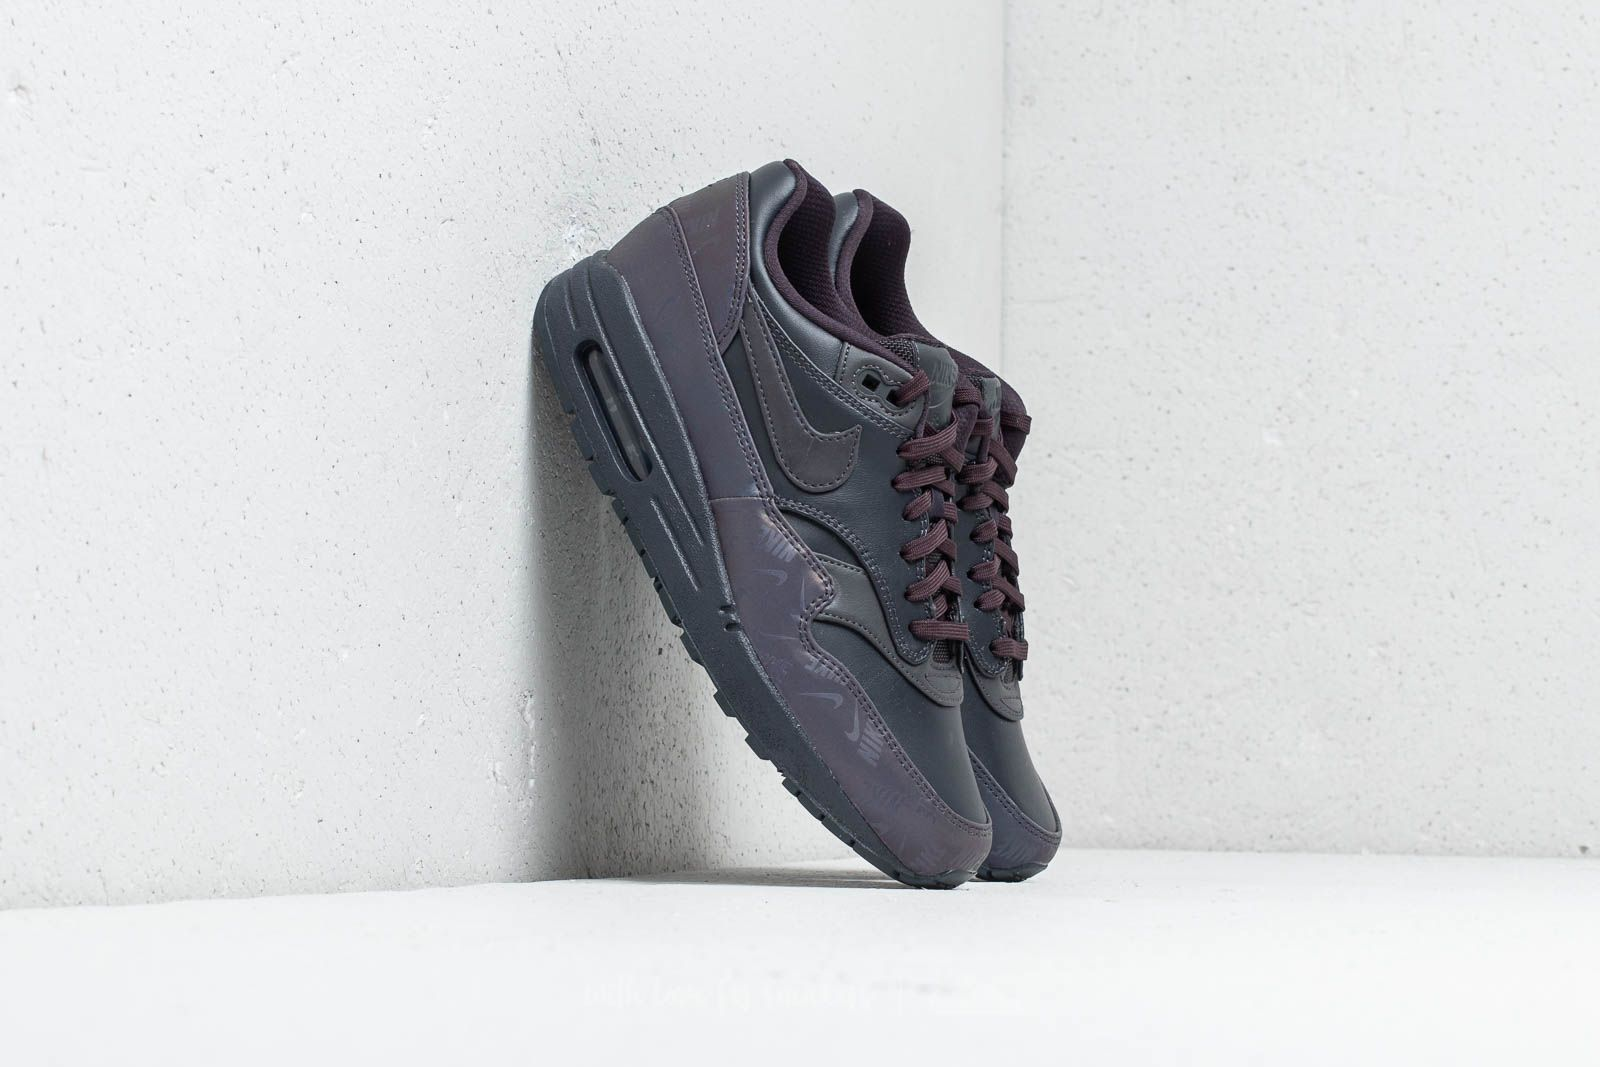 Nike AIR MAX 90 LX W Rose Schuhe Sneaker Low Damen 135